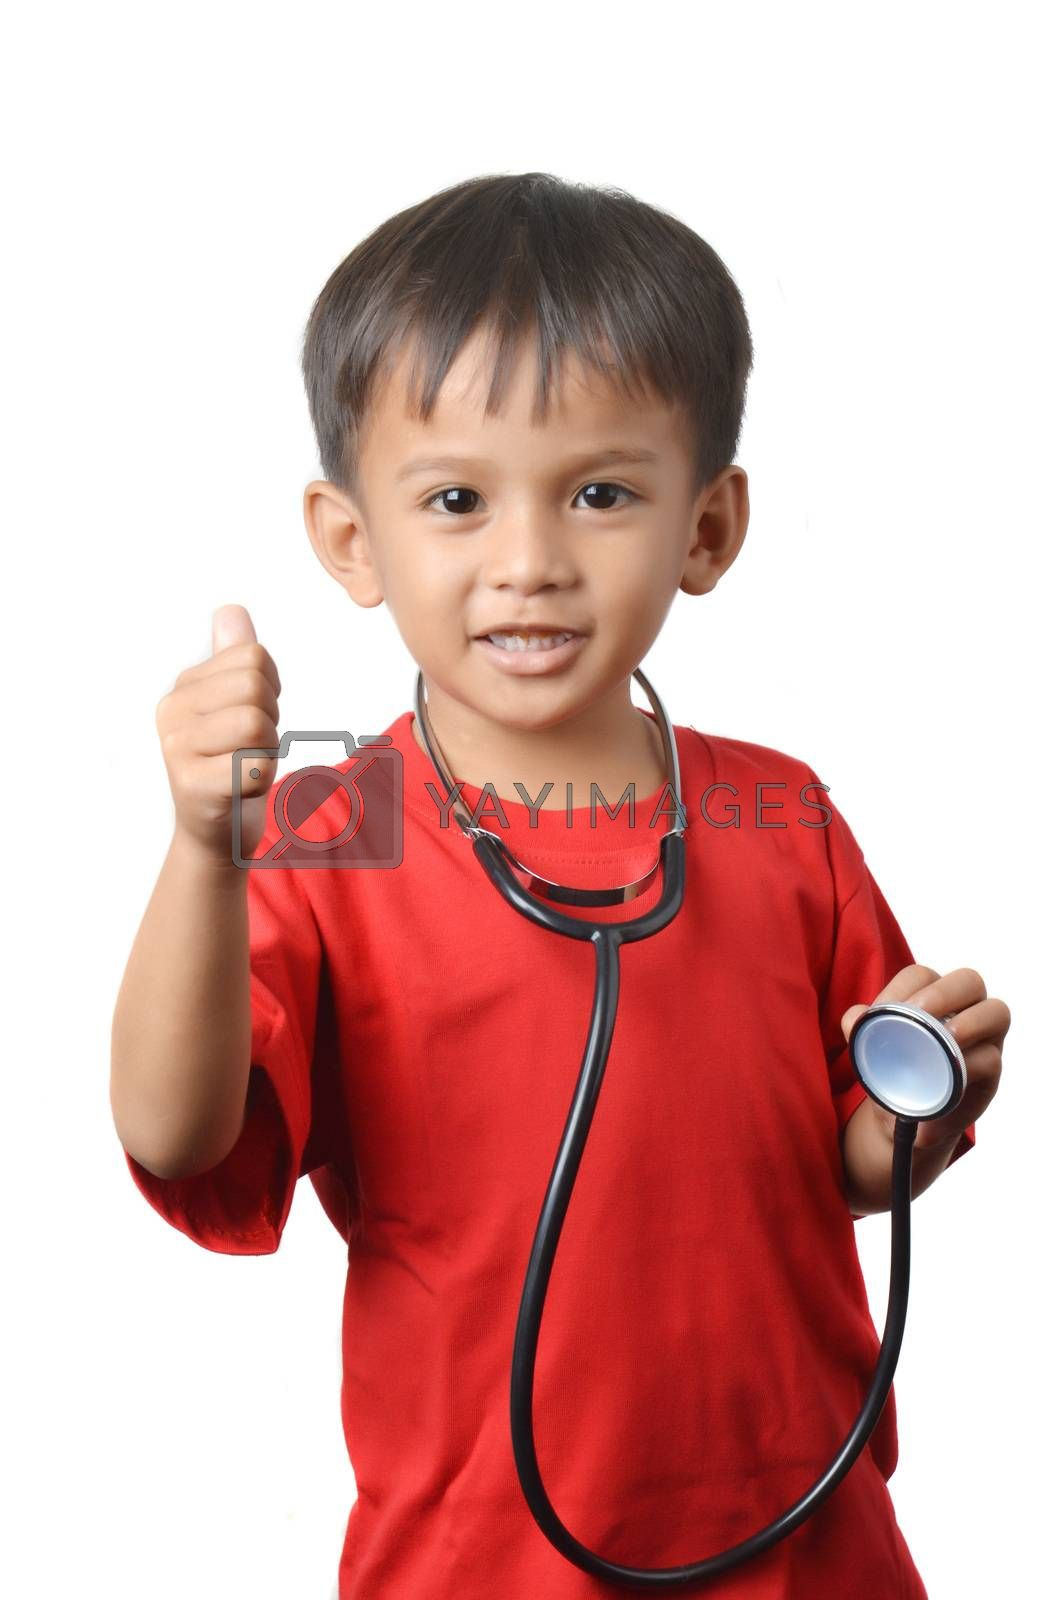 asian little boy holding a stethoscope by antonihalim